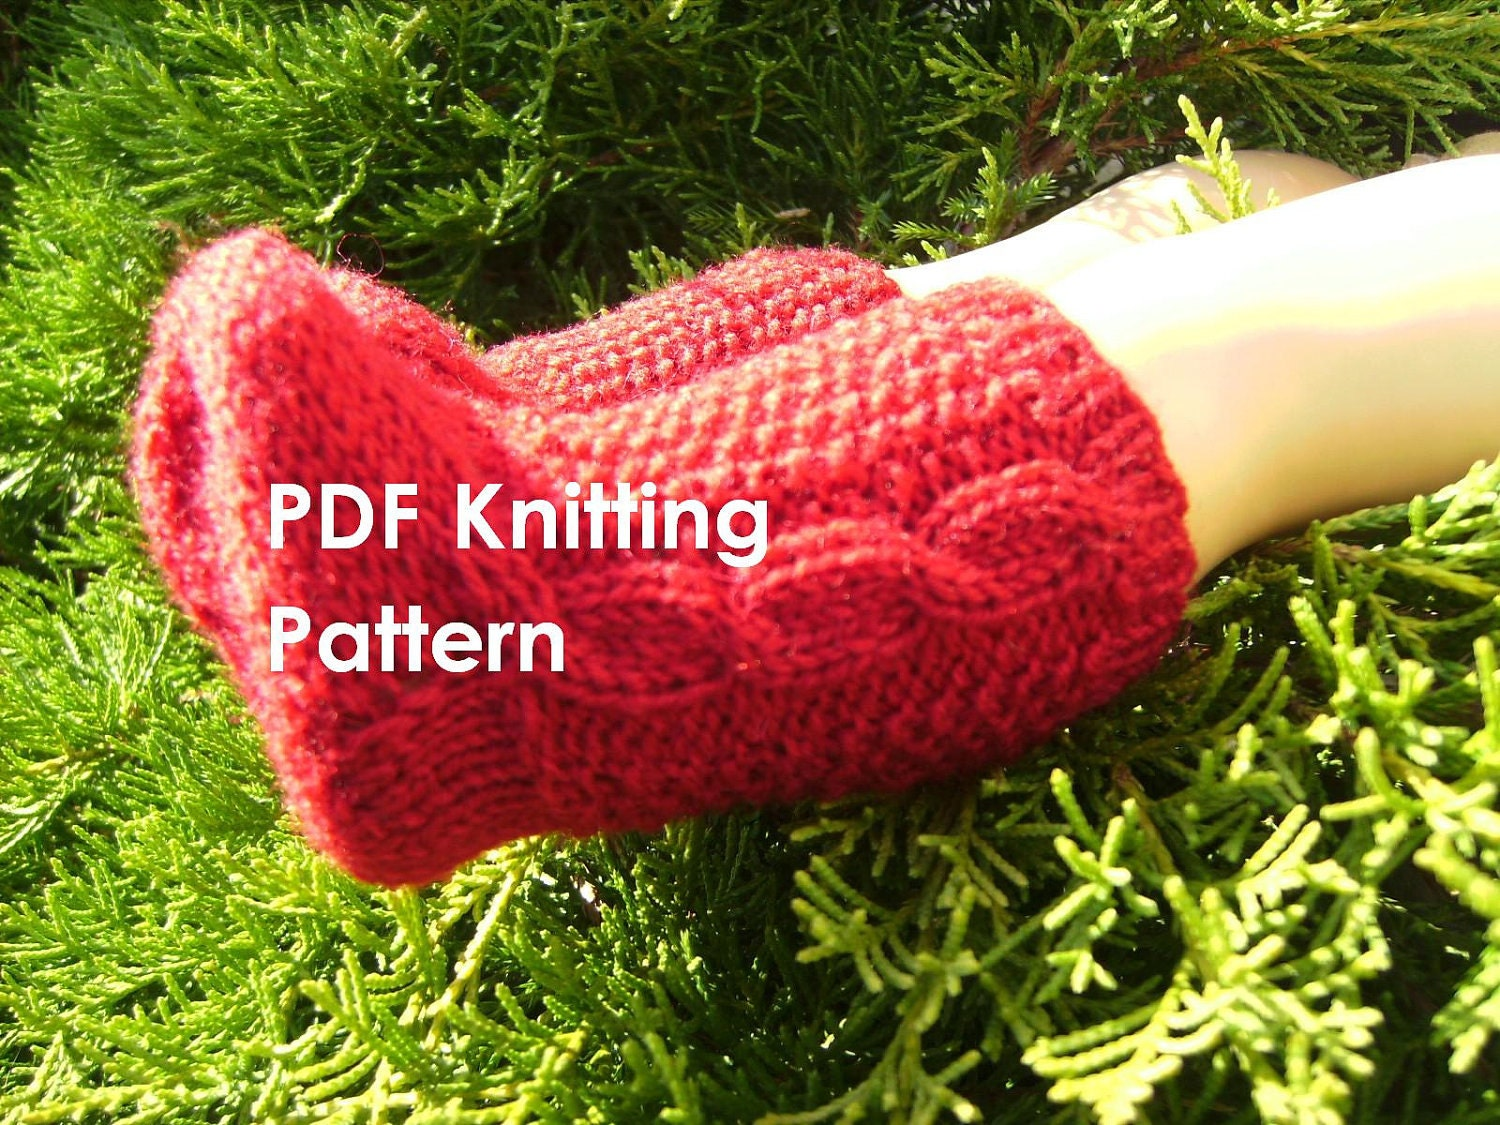 Aran Sock Knitting Pattern : PDF Knitting Pattern Knit Socks with Irish Aran by ...